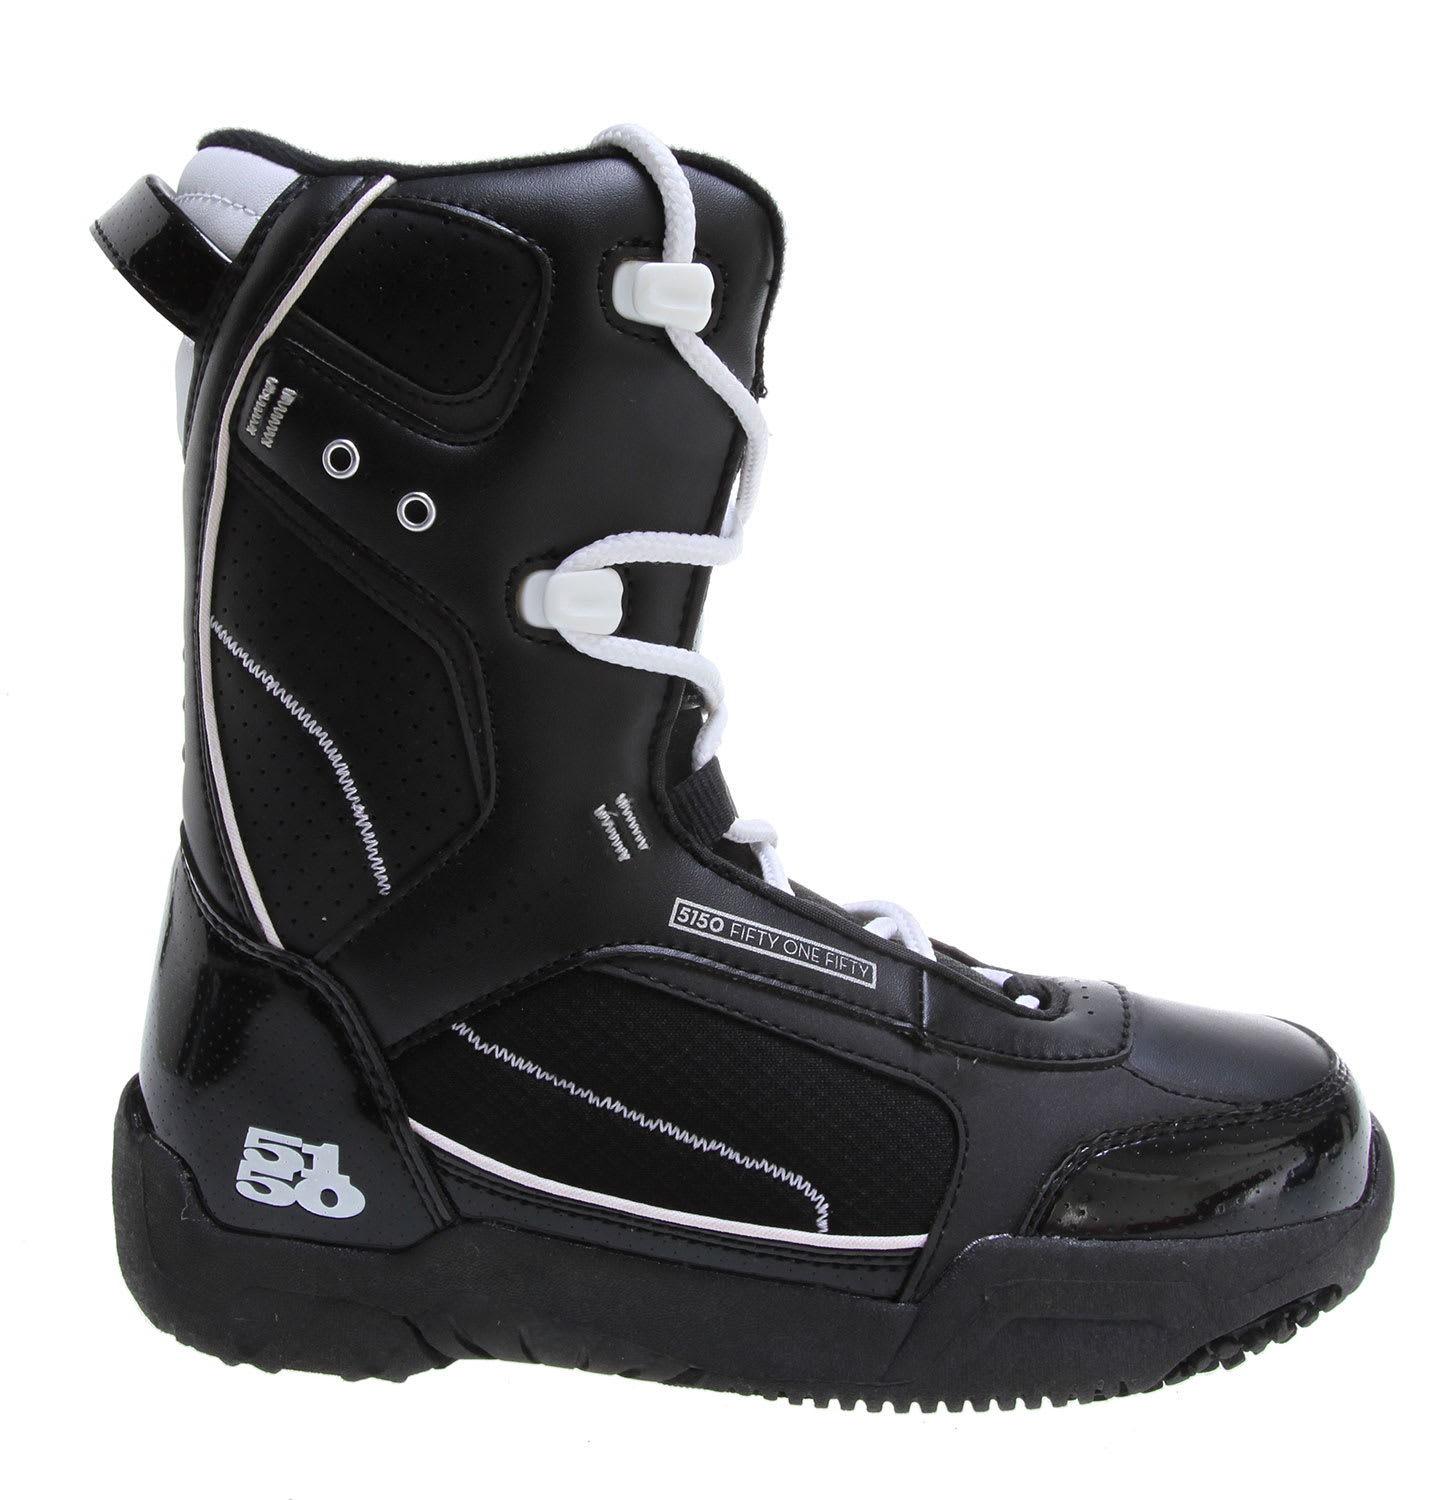 Discount, Cheap Kids & Youth Snowboard Boots | Save up to 70%